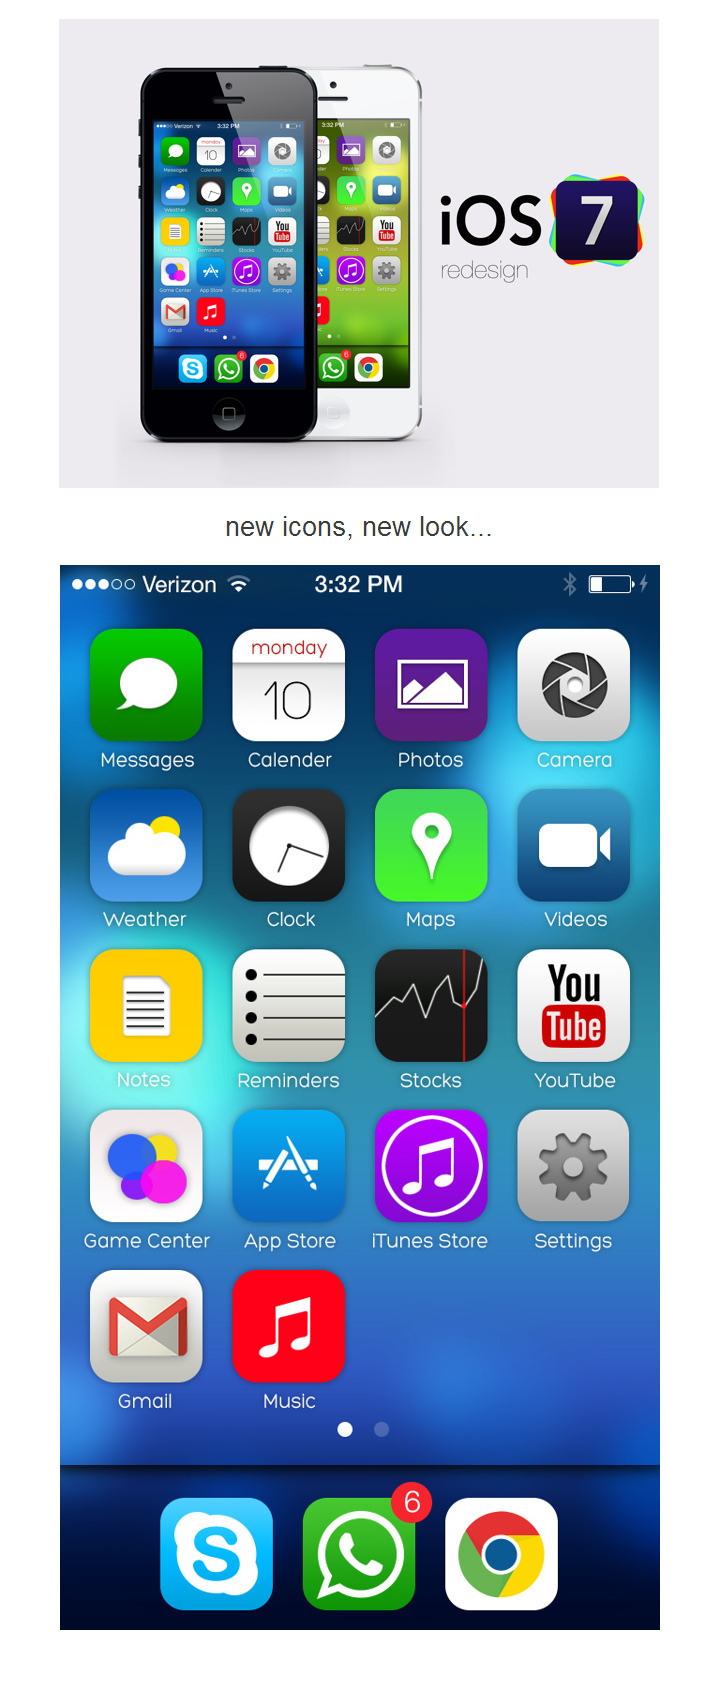 ios7 redesign . new icons, new look. ios7 design icons